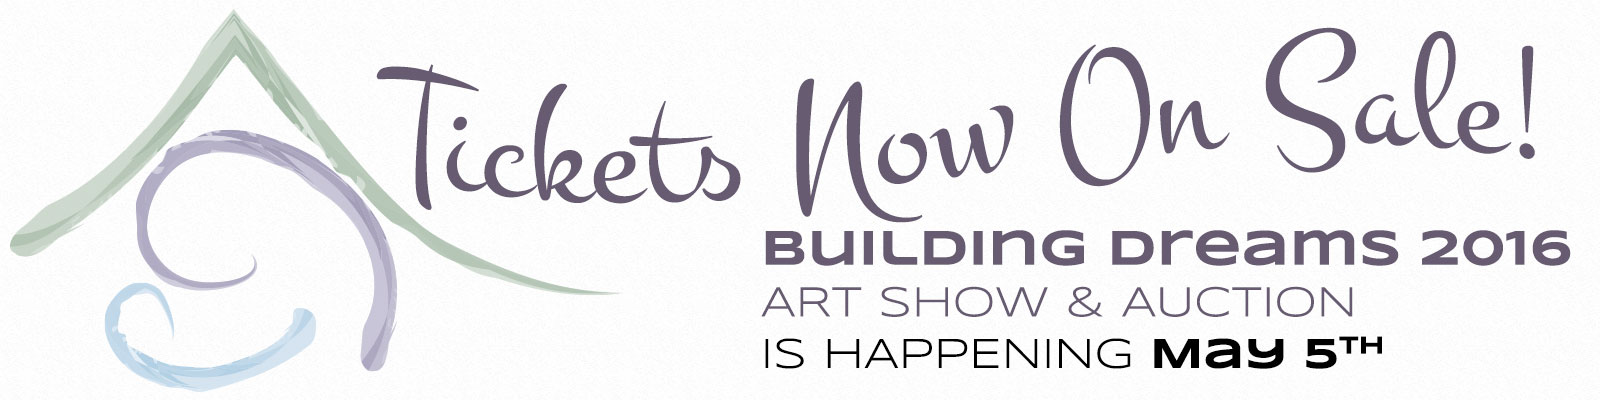 Tickets Now On Sale! Building Dreams 2016 Art Show and Auction is happening May 5th!